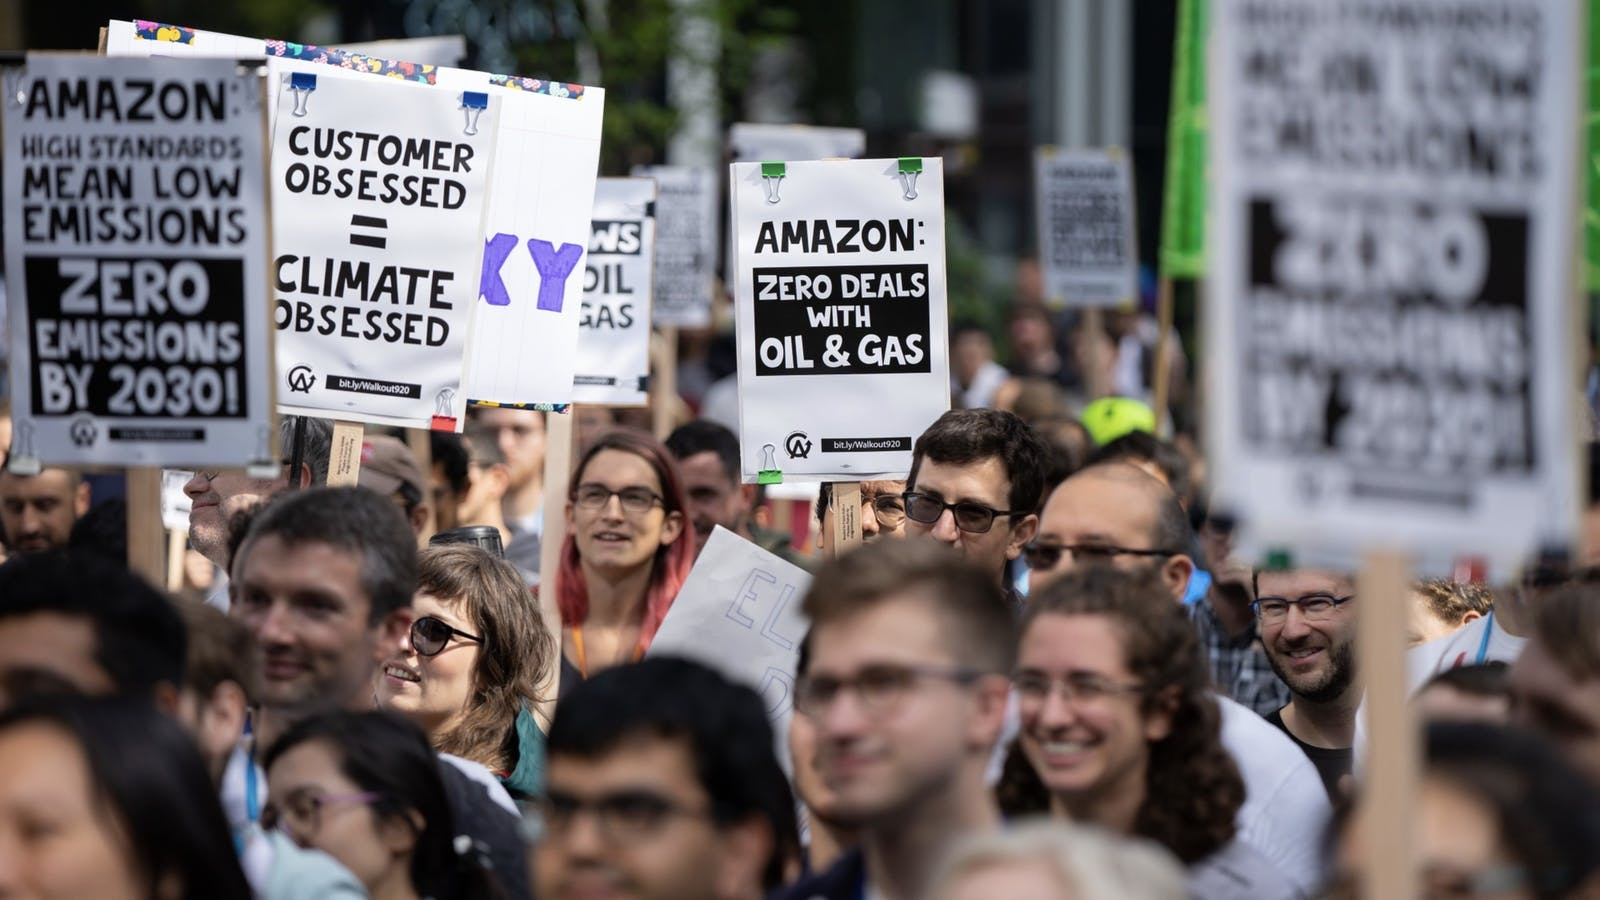 Amazon workers protesting the company over climate change last September. Photo by Bloomberg